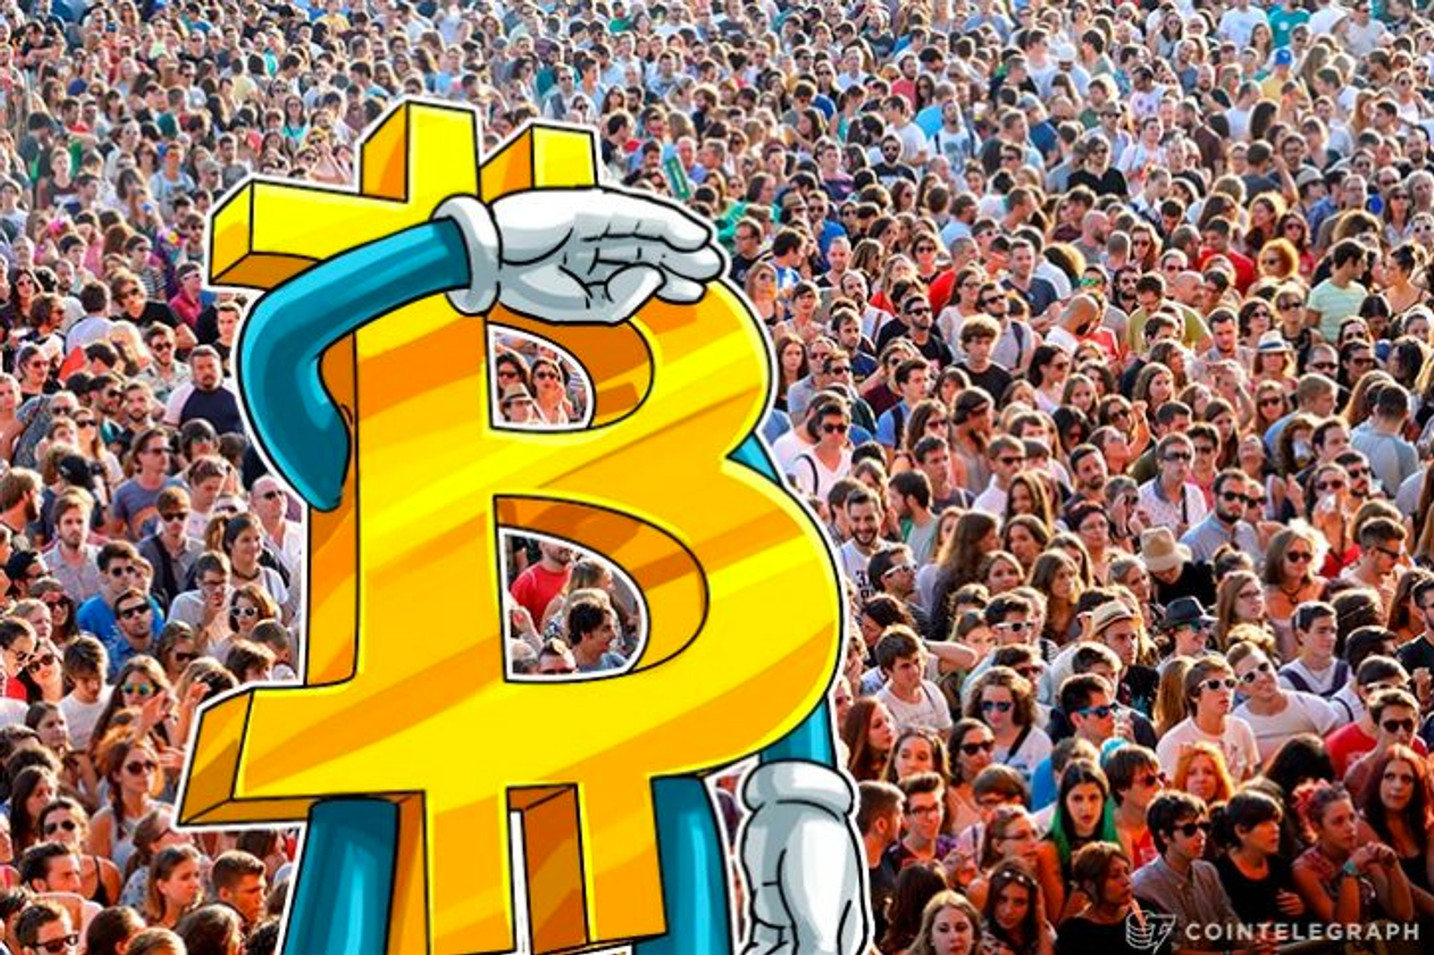 Russia Becomes Bitcoin's Future Big Influencer Along With China, India